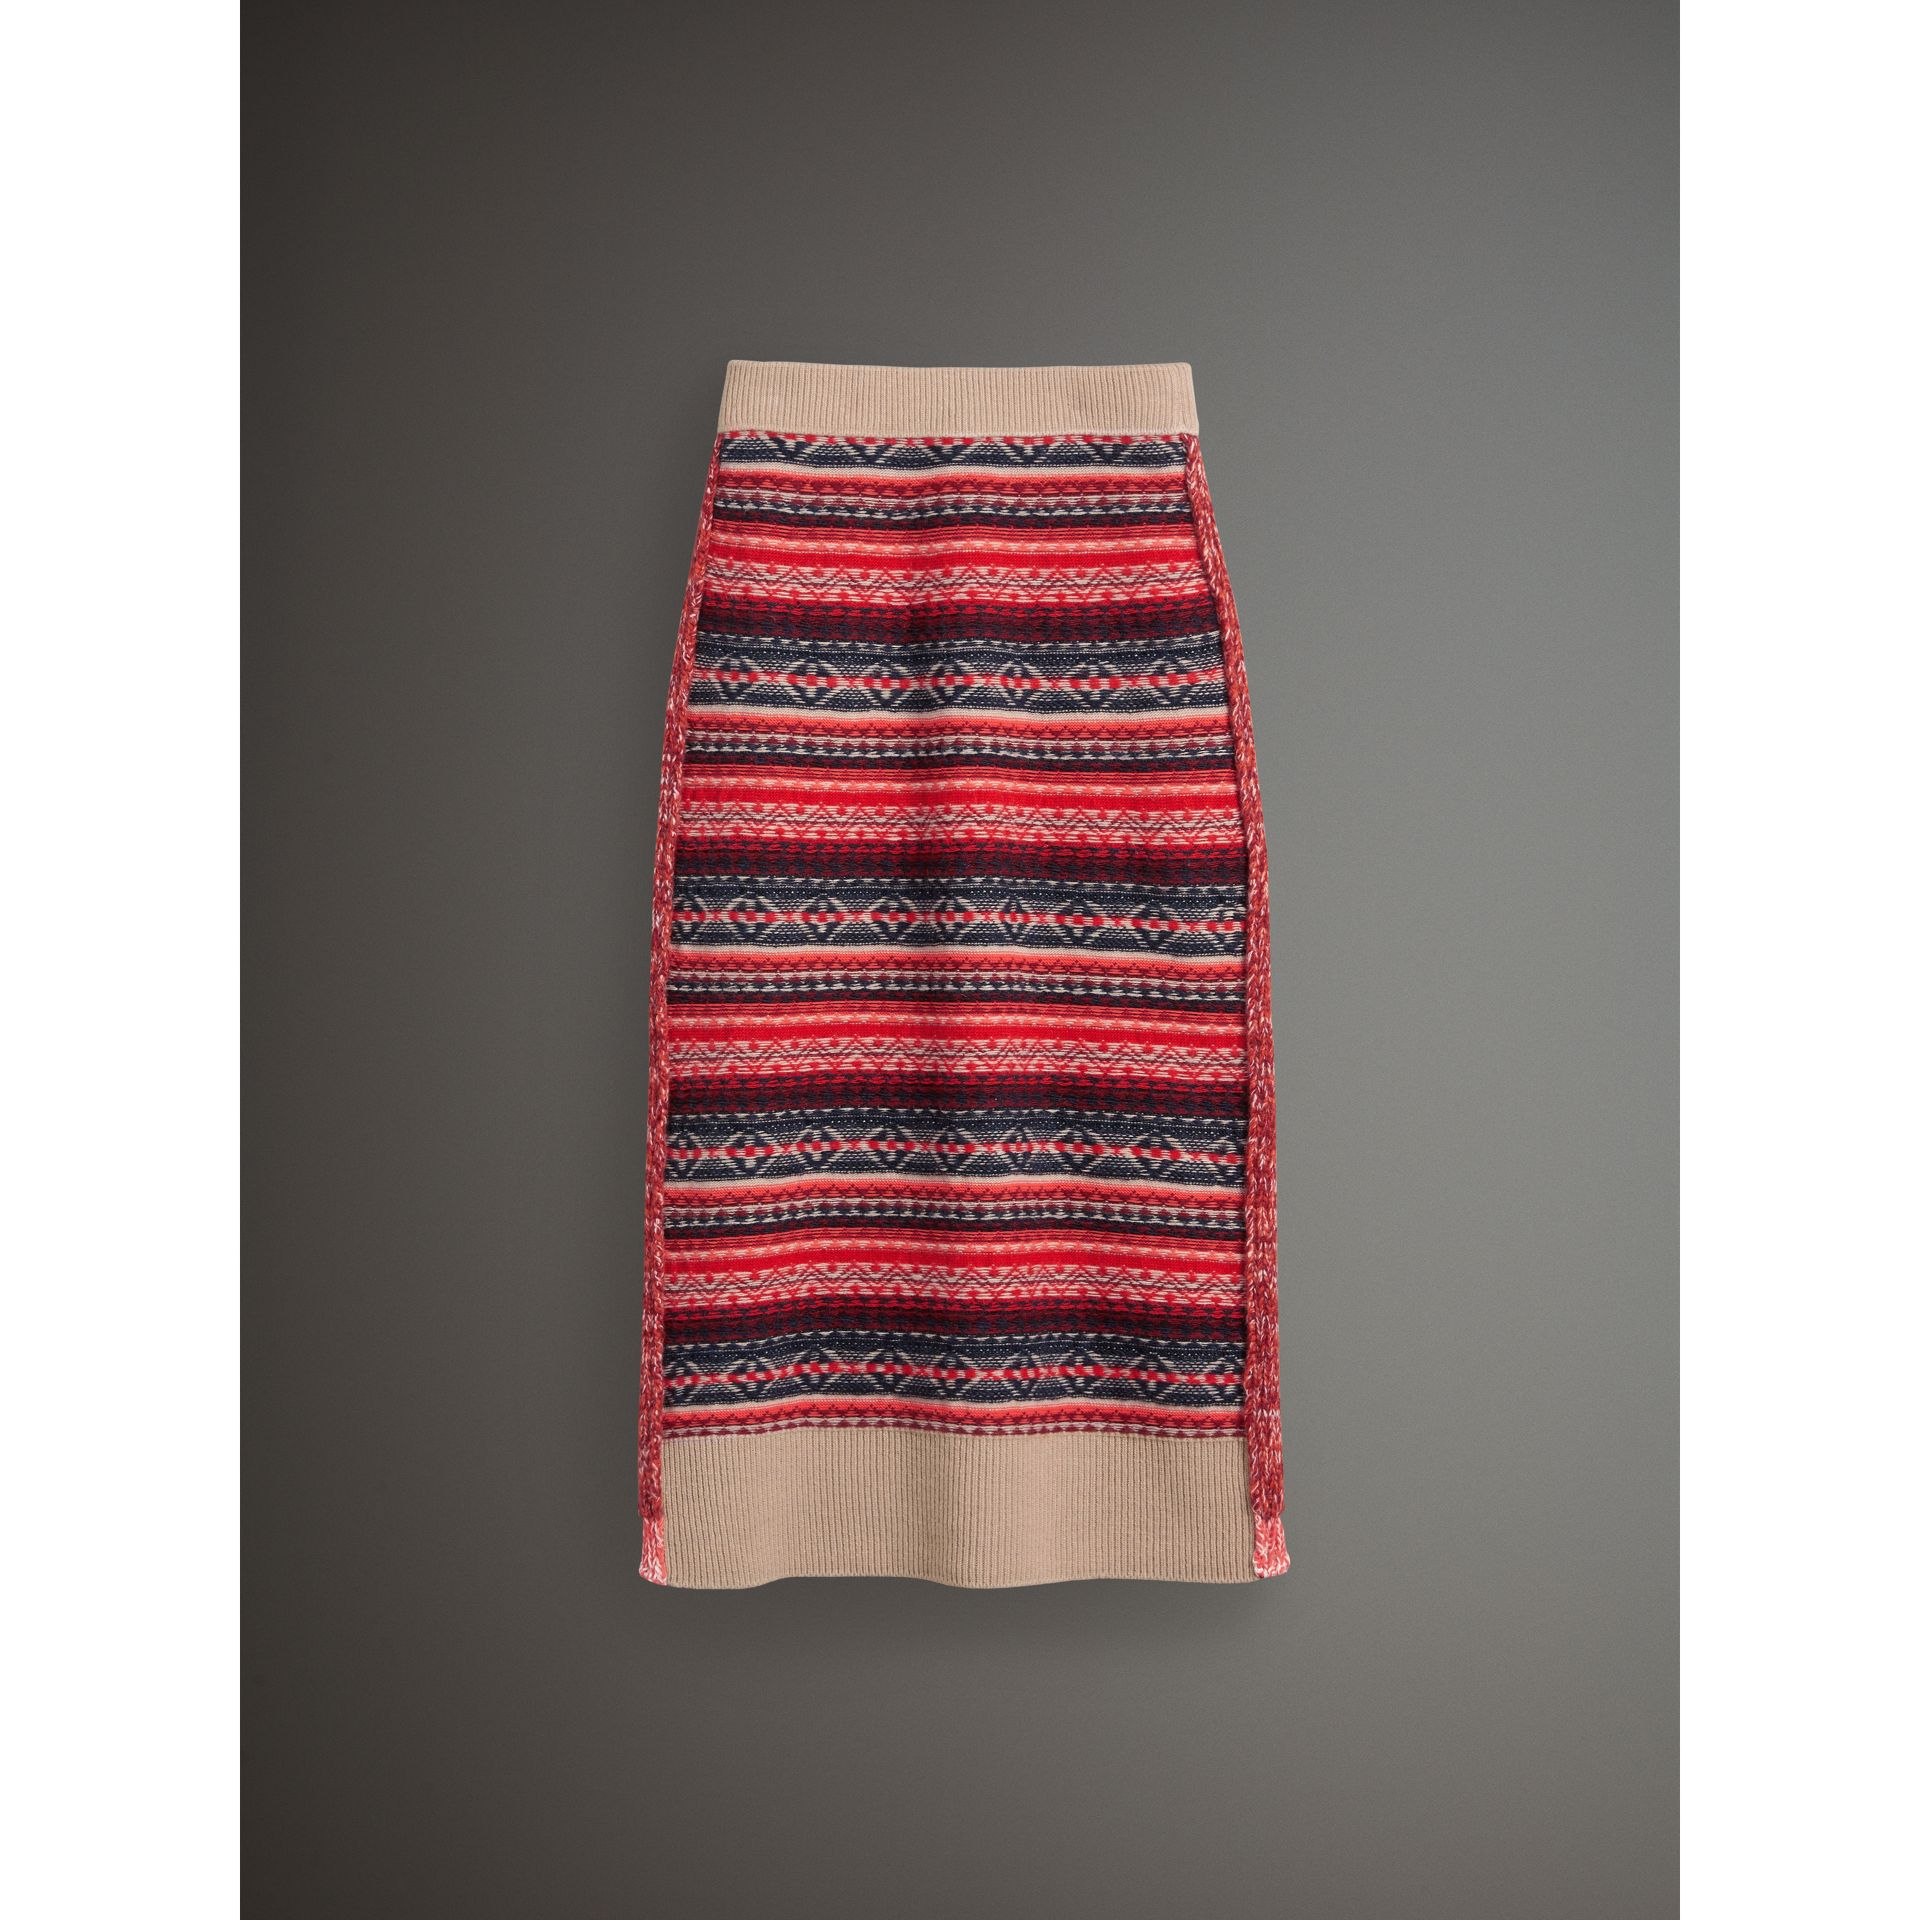 Fair Isle and Cable Knit Wool Cashmere Blend Skirt in Multicolour - Women | Burberry United States - gallery image 3